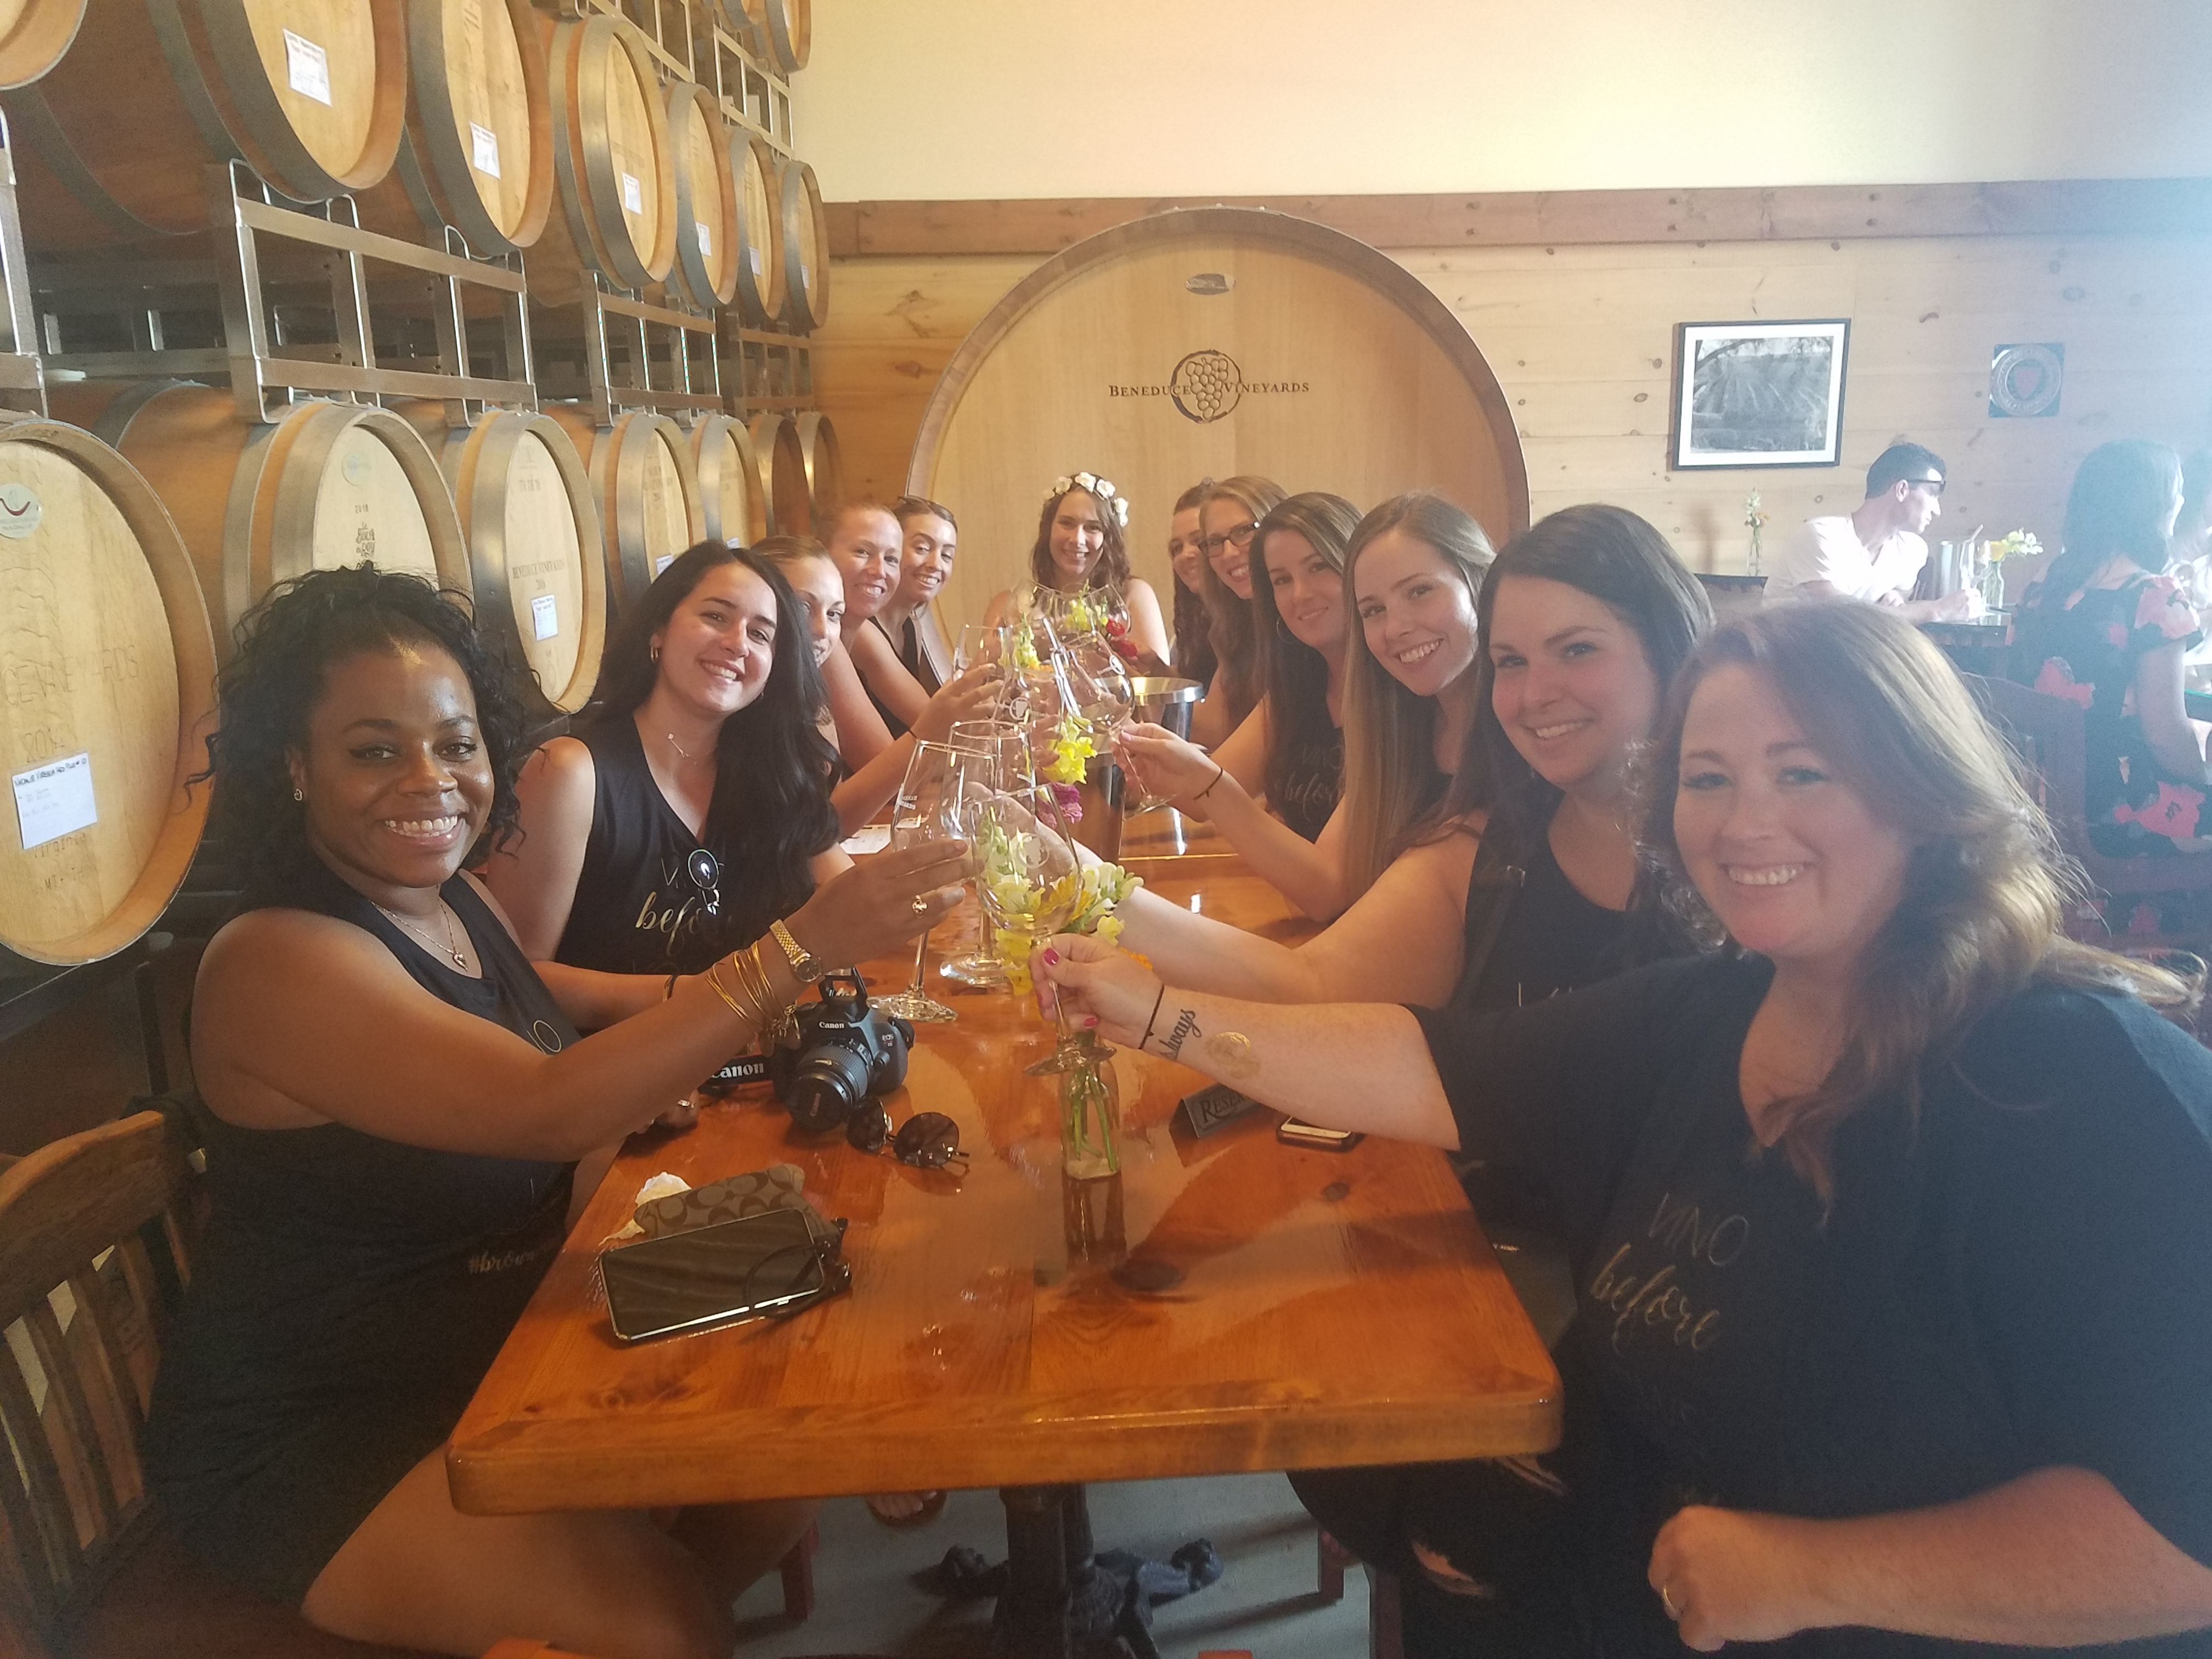 The Definitive Guide to Wine Tasting in NJ - Fun New Jersey ...